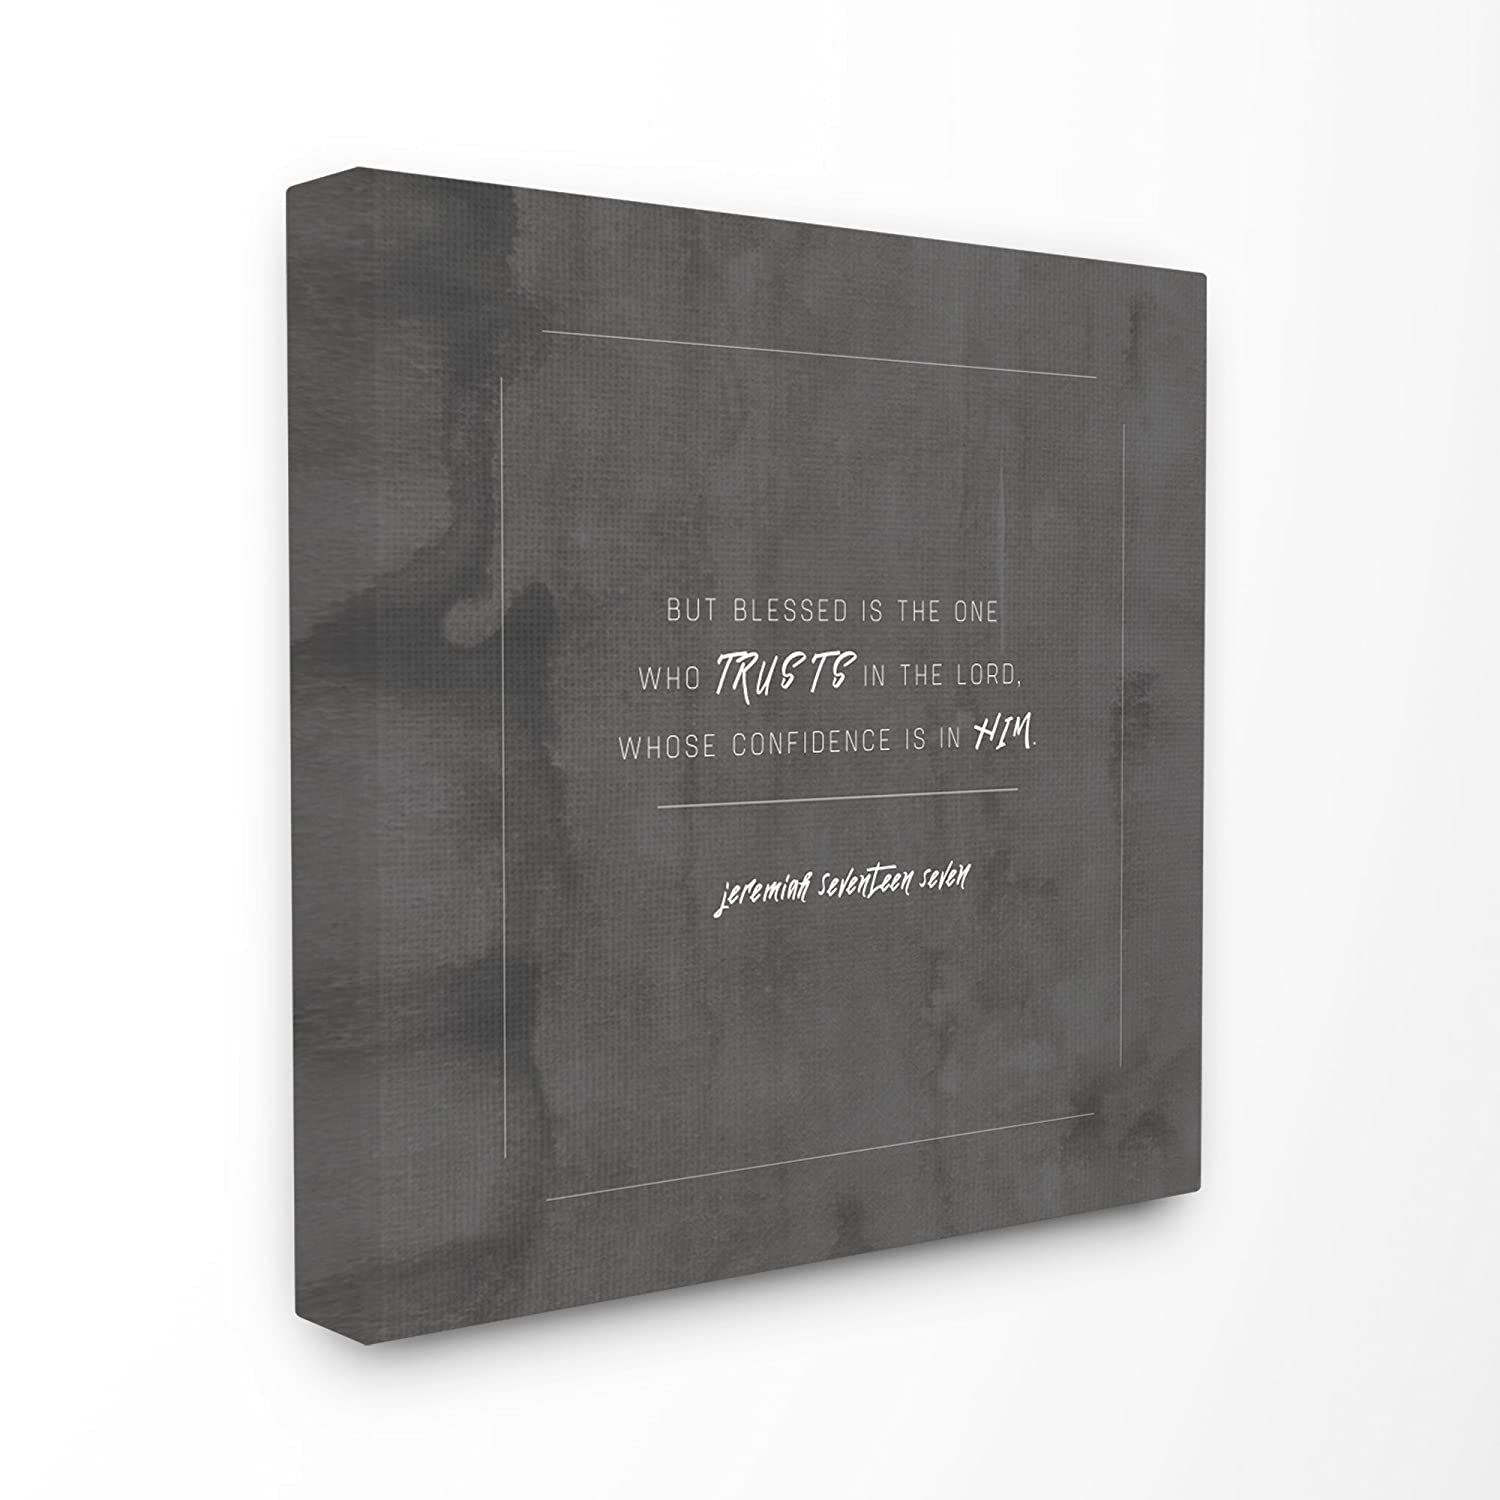 17 x 1.5 x 17 Stupell Home D/écor Blessed Is The One Who Trusts Stretched Canvas Wall Art by EtchLife Proudly Made in USA